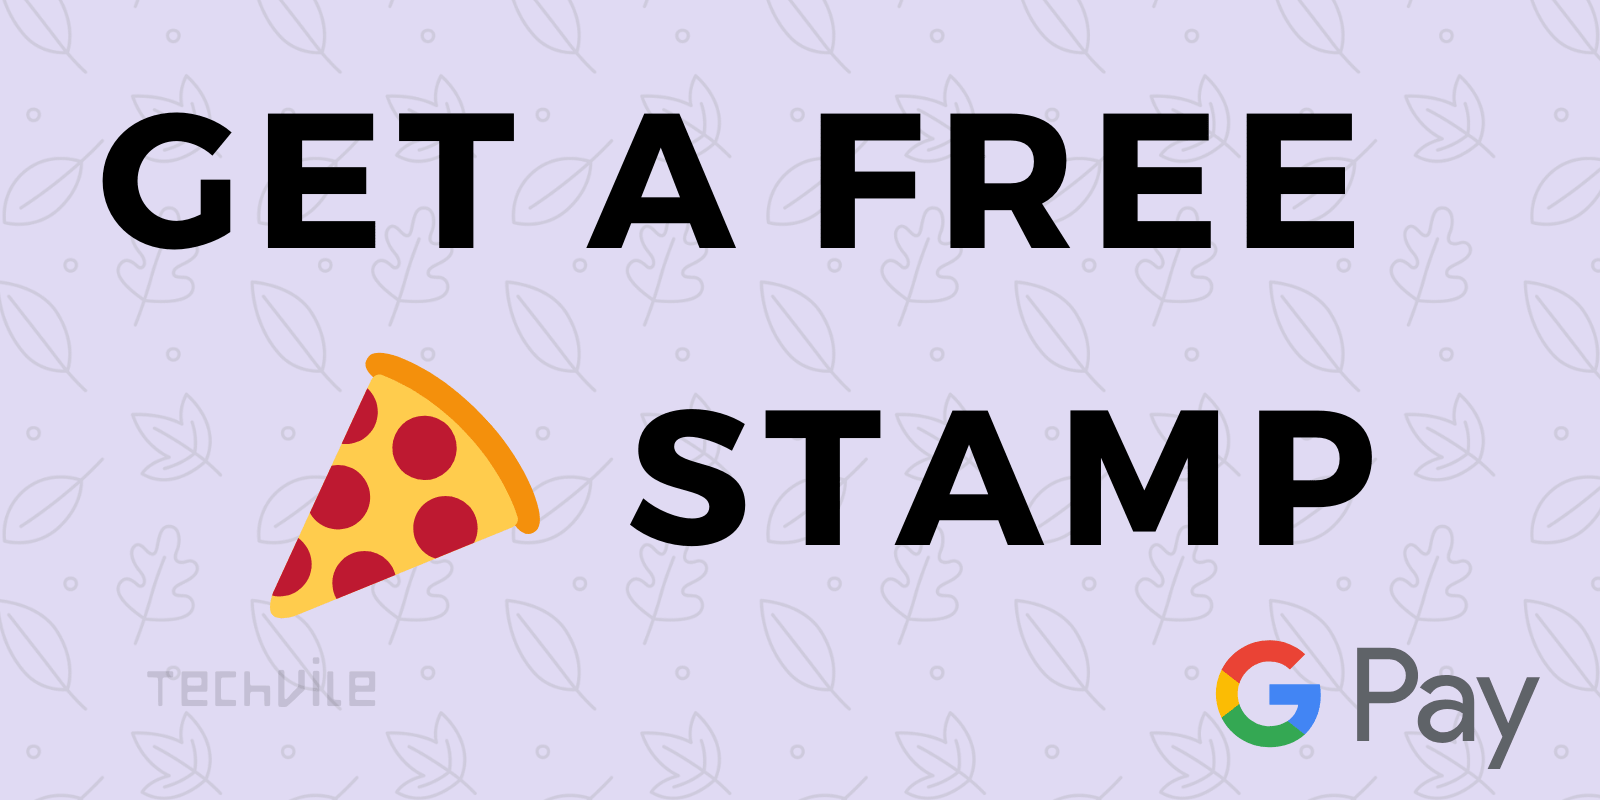 Get Pizza Stamp for Free in Google Pay 2020 Event